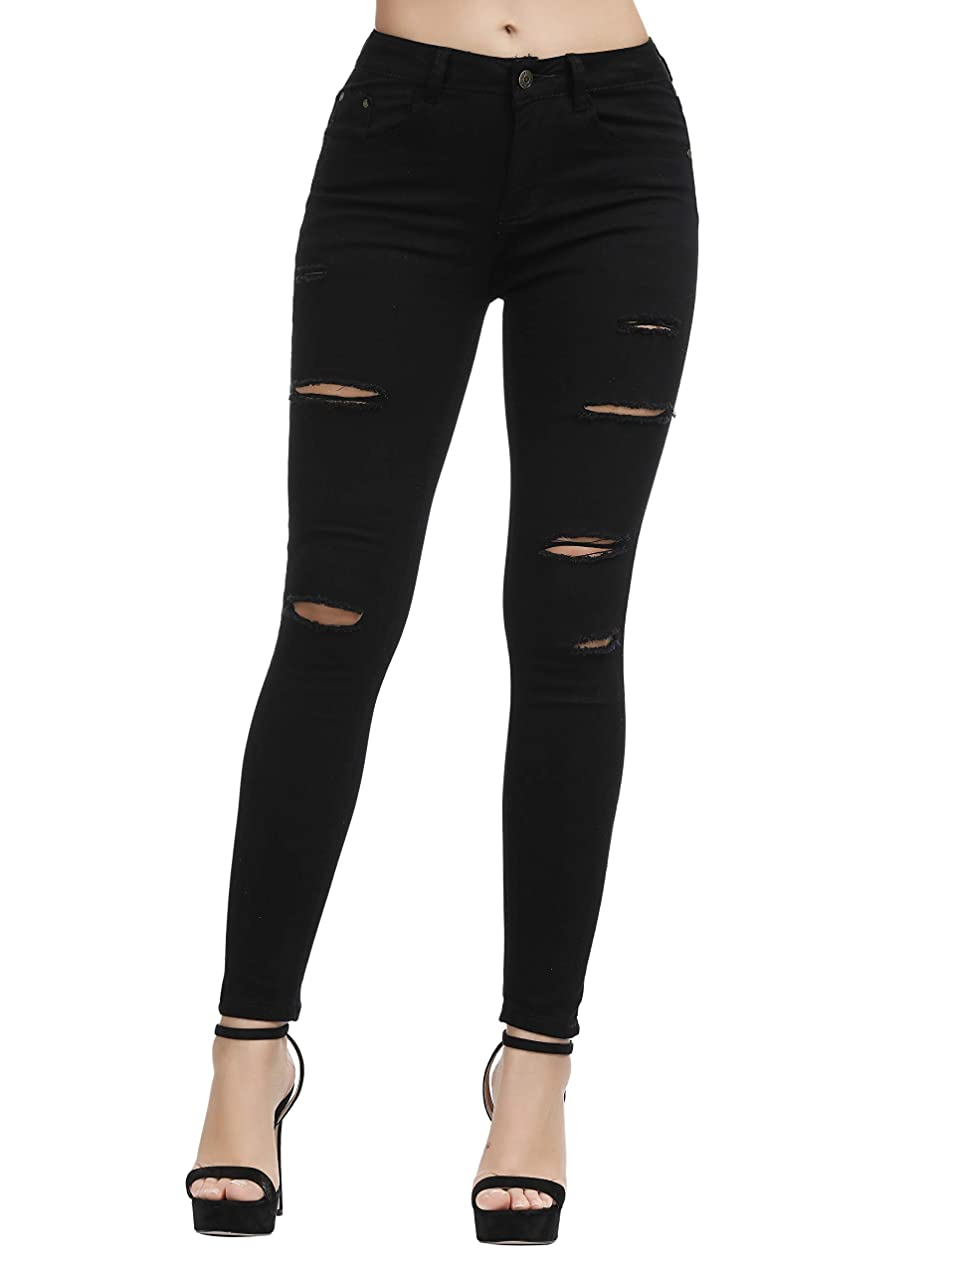 Women's Juniors Mid-Rise Distressed Slim Fit Stretchy Skinny Jeans Jegging fhrkebvd824